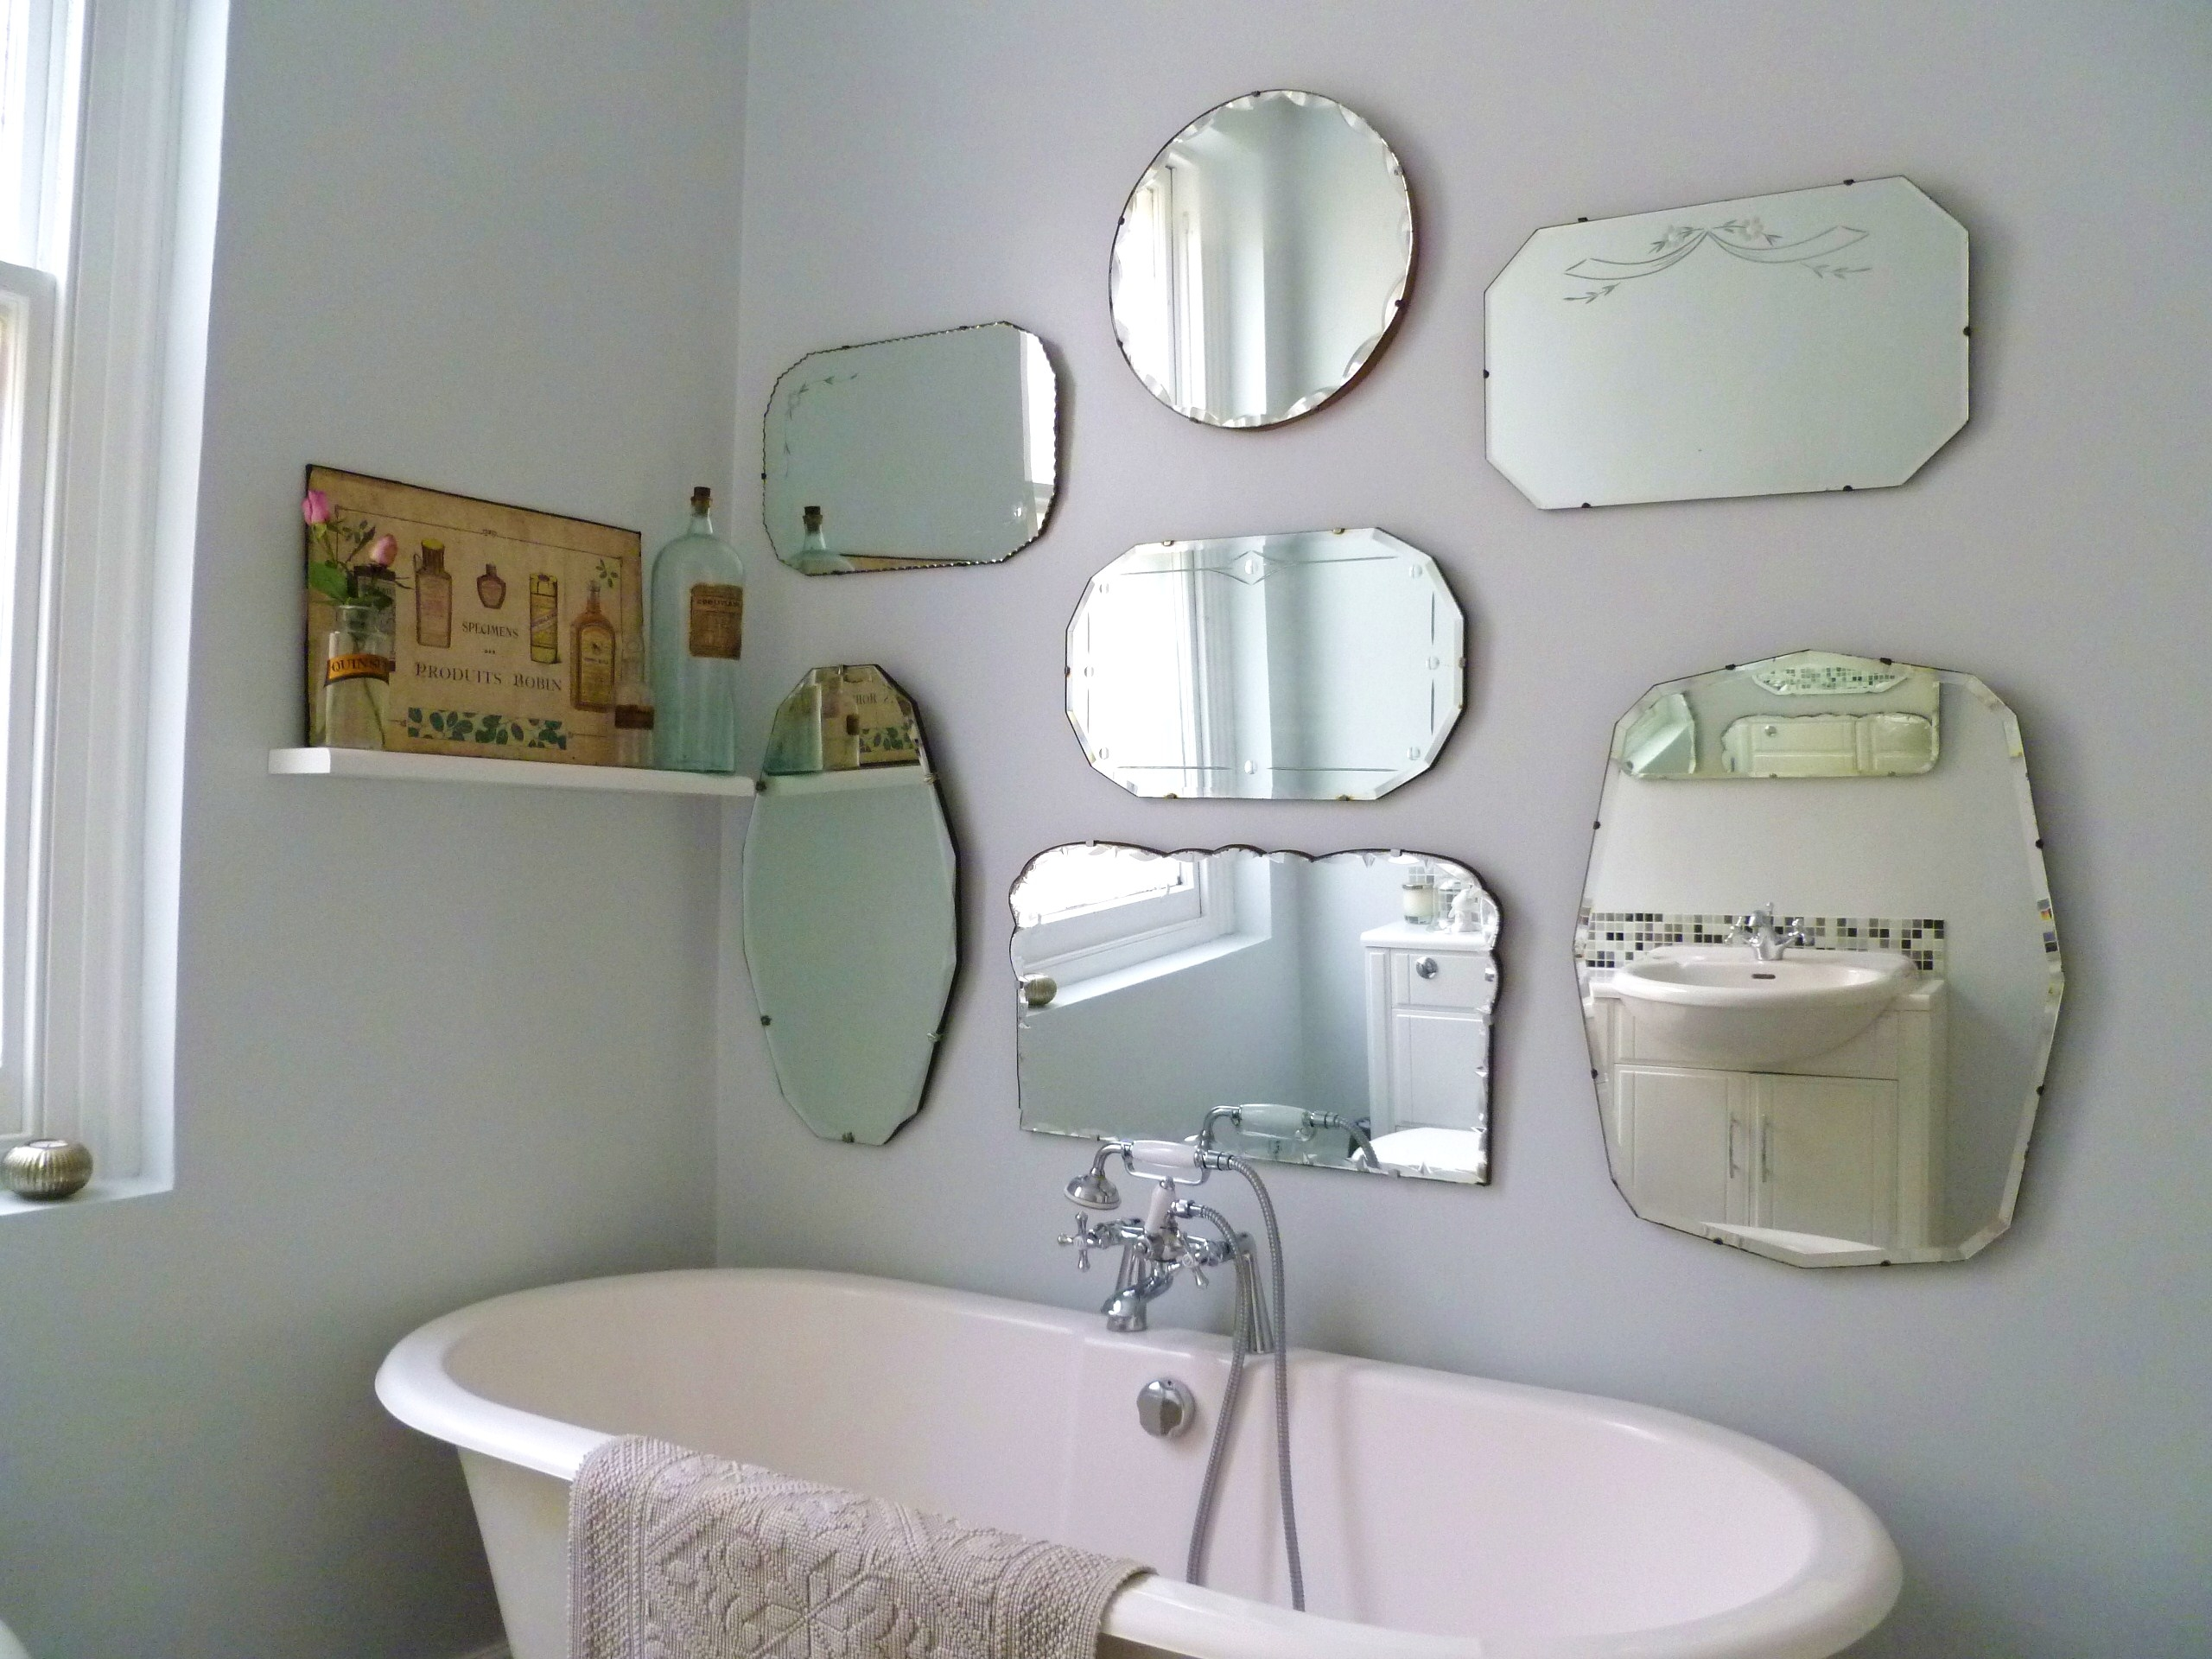 Modest Design Vintage Wall Mirrors Prissy Ideas Beautifull In Vintage Style Bathroom Mirror (View 7 of 15)